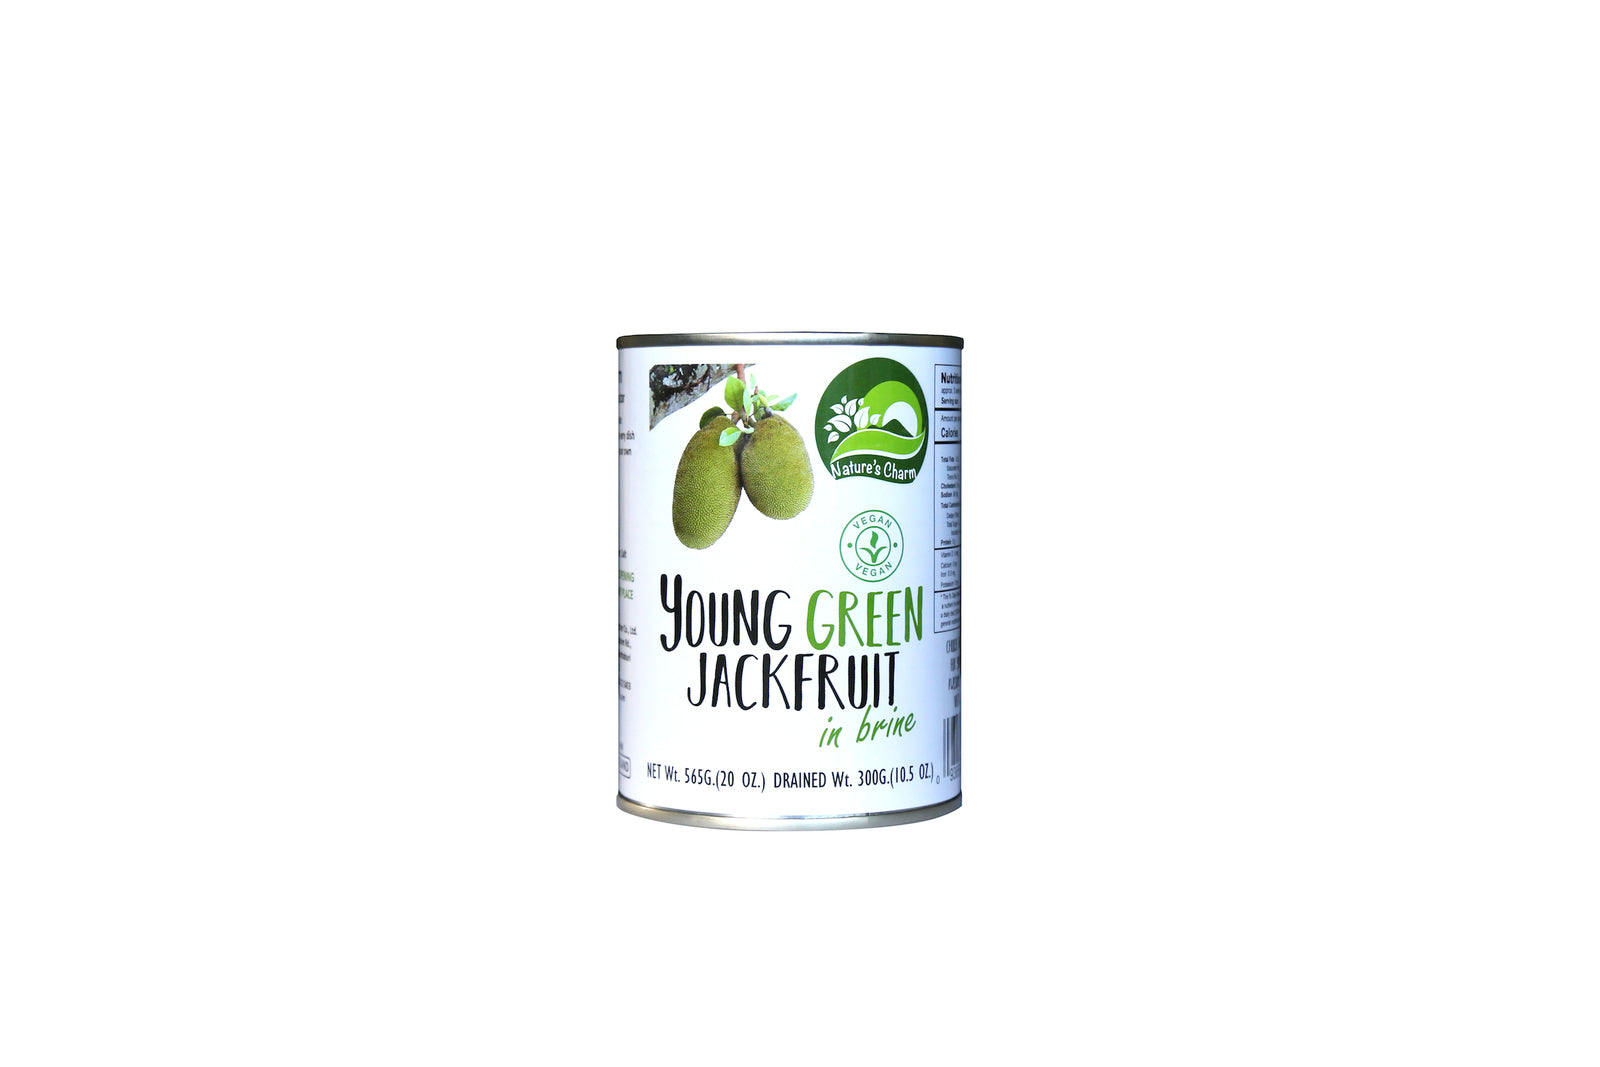 Natures Charm Young Green Jackfruit in Brine 565g